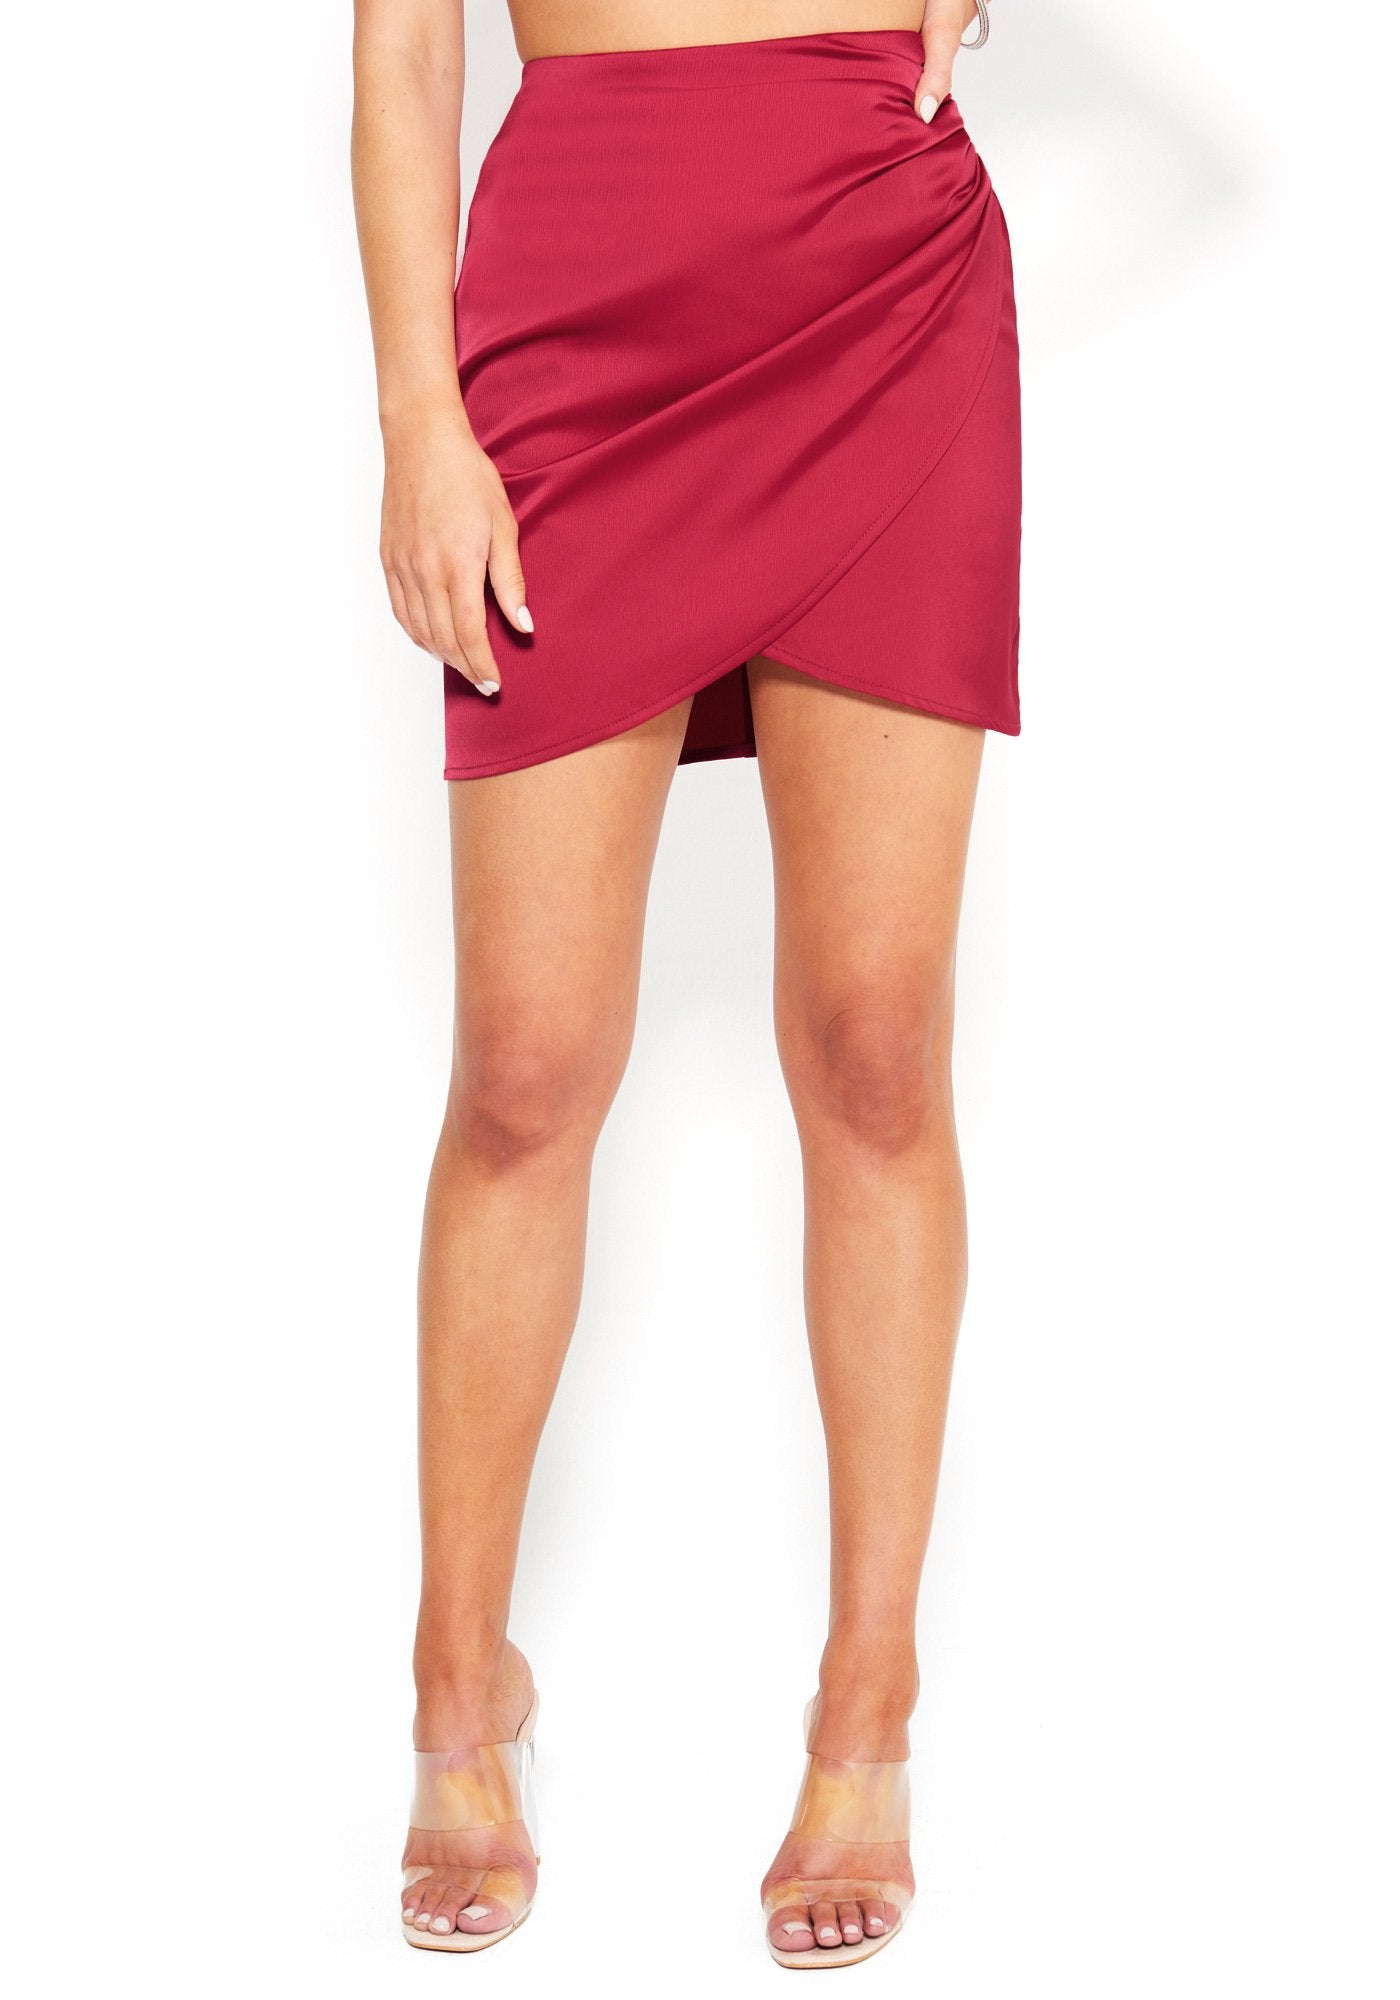 Bebe Women's Satin Overlay Mini Skirt, Size 00 in GRANITA Spandex